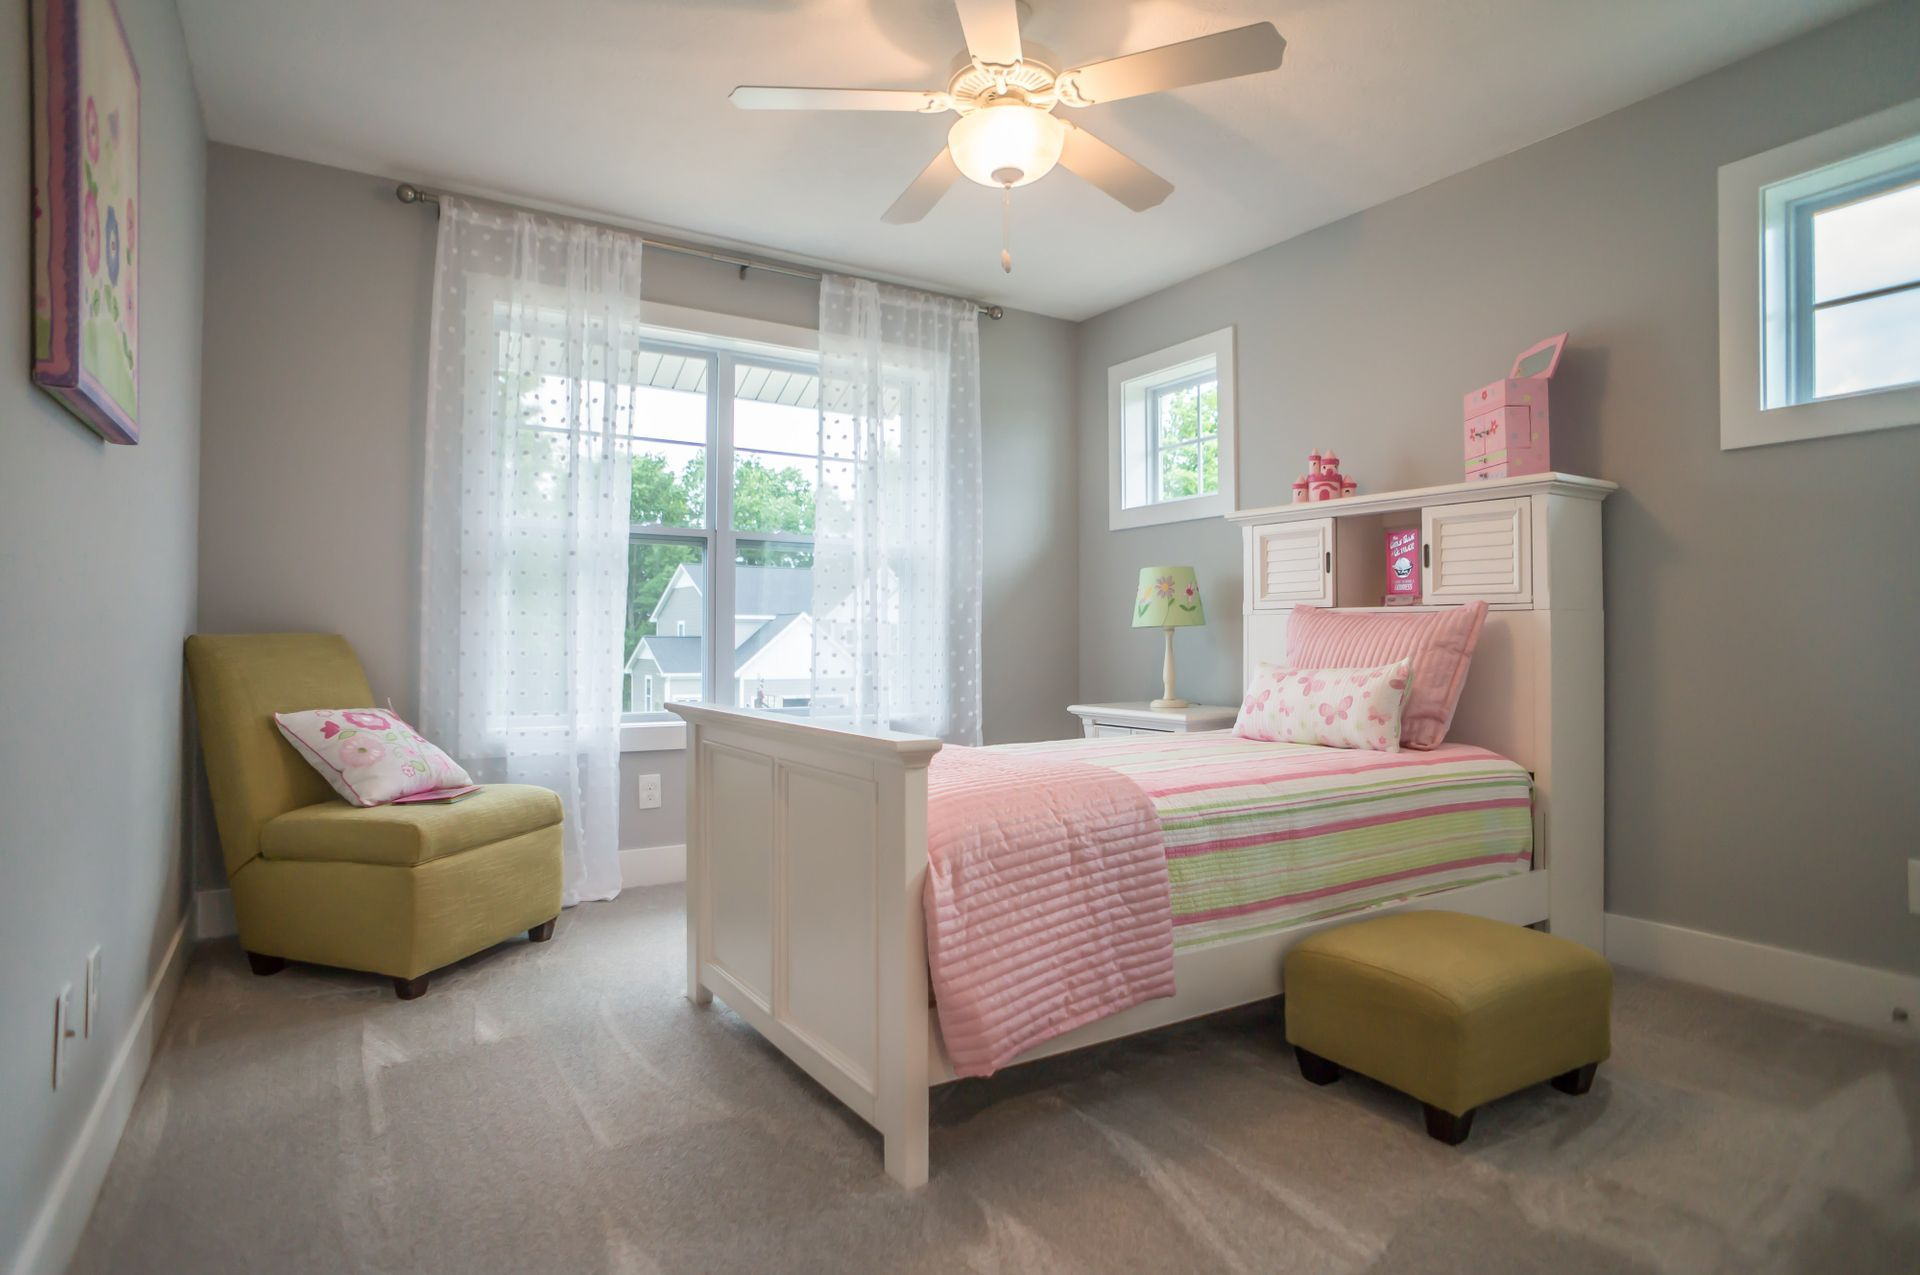 Bedroom featured in the Maxwell By Mayberry Homes in Flint, MI